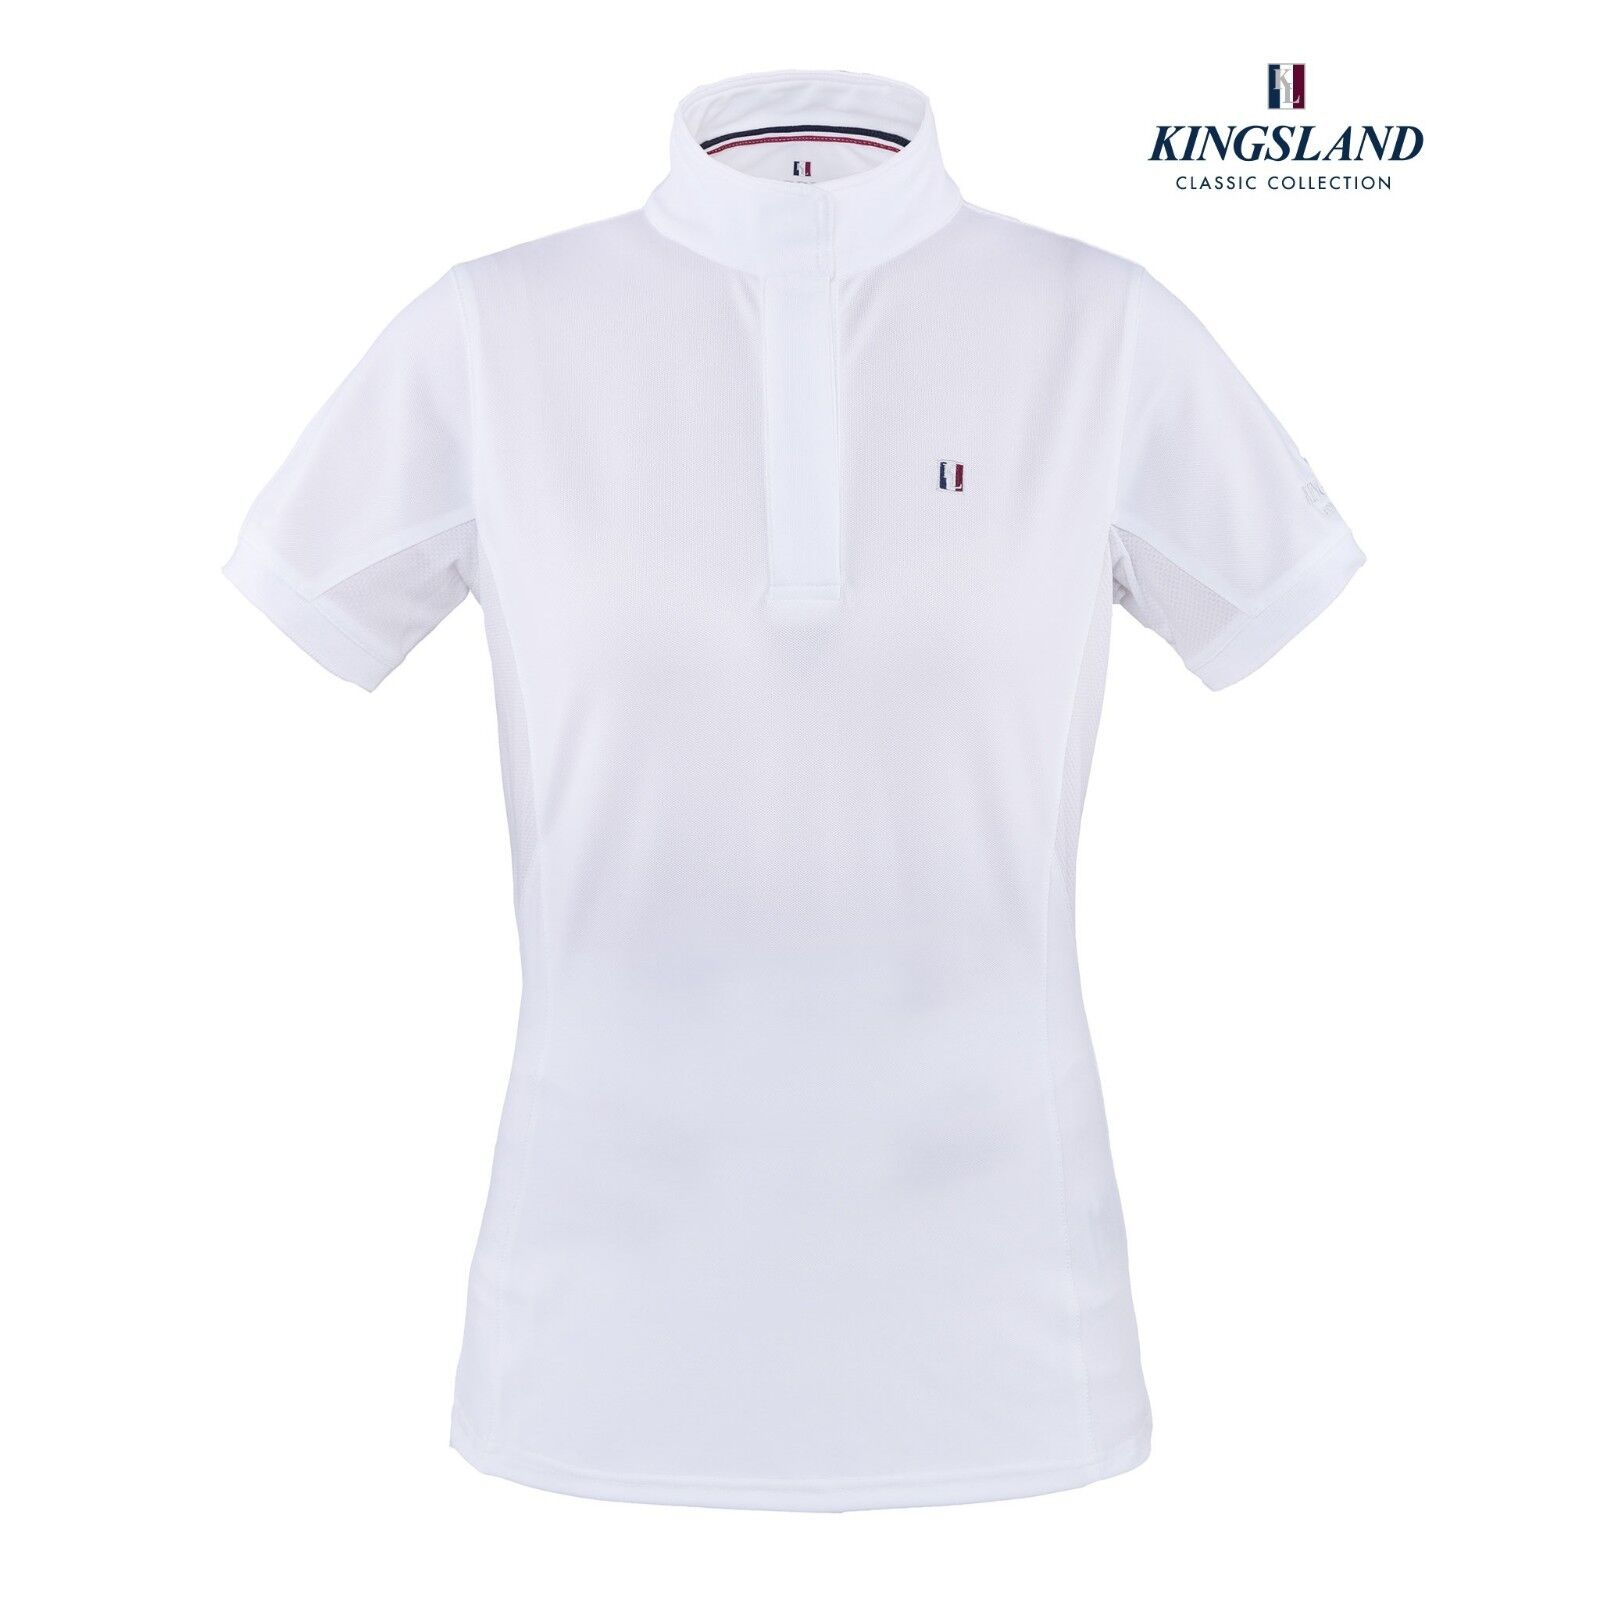 Show Shirt Equestrian Kingsland Ladies horse Riding Reduced to Clear